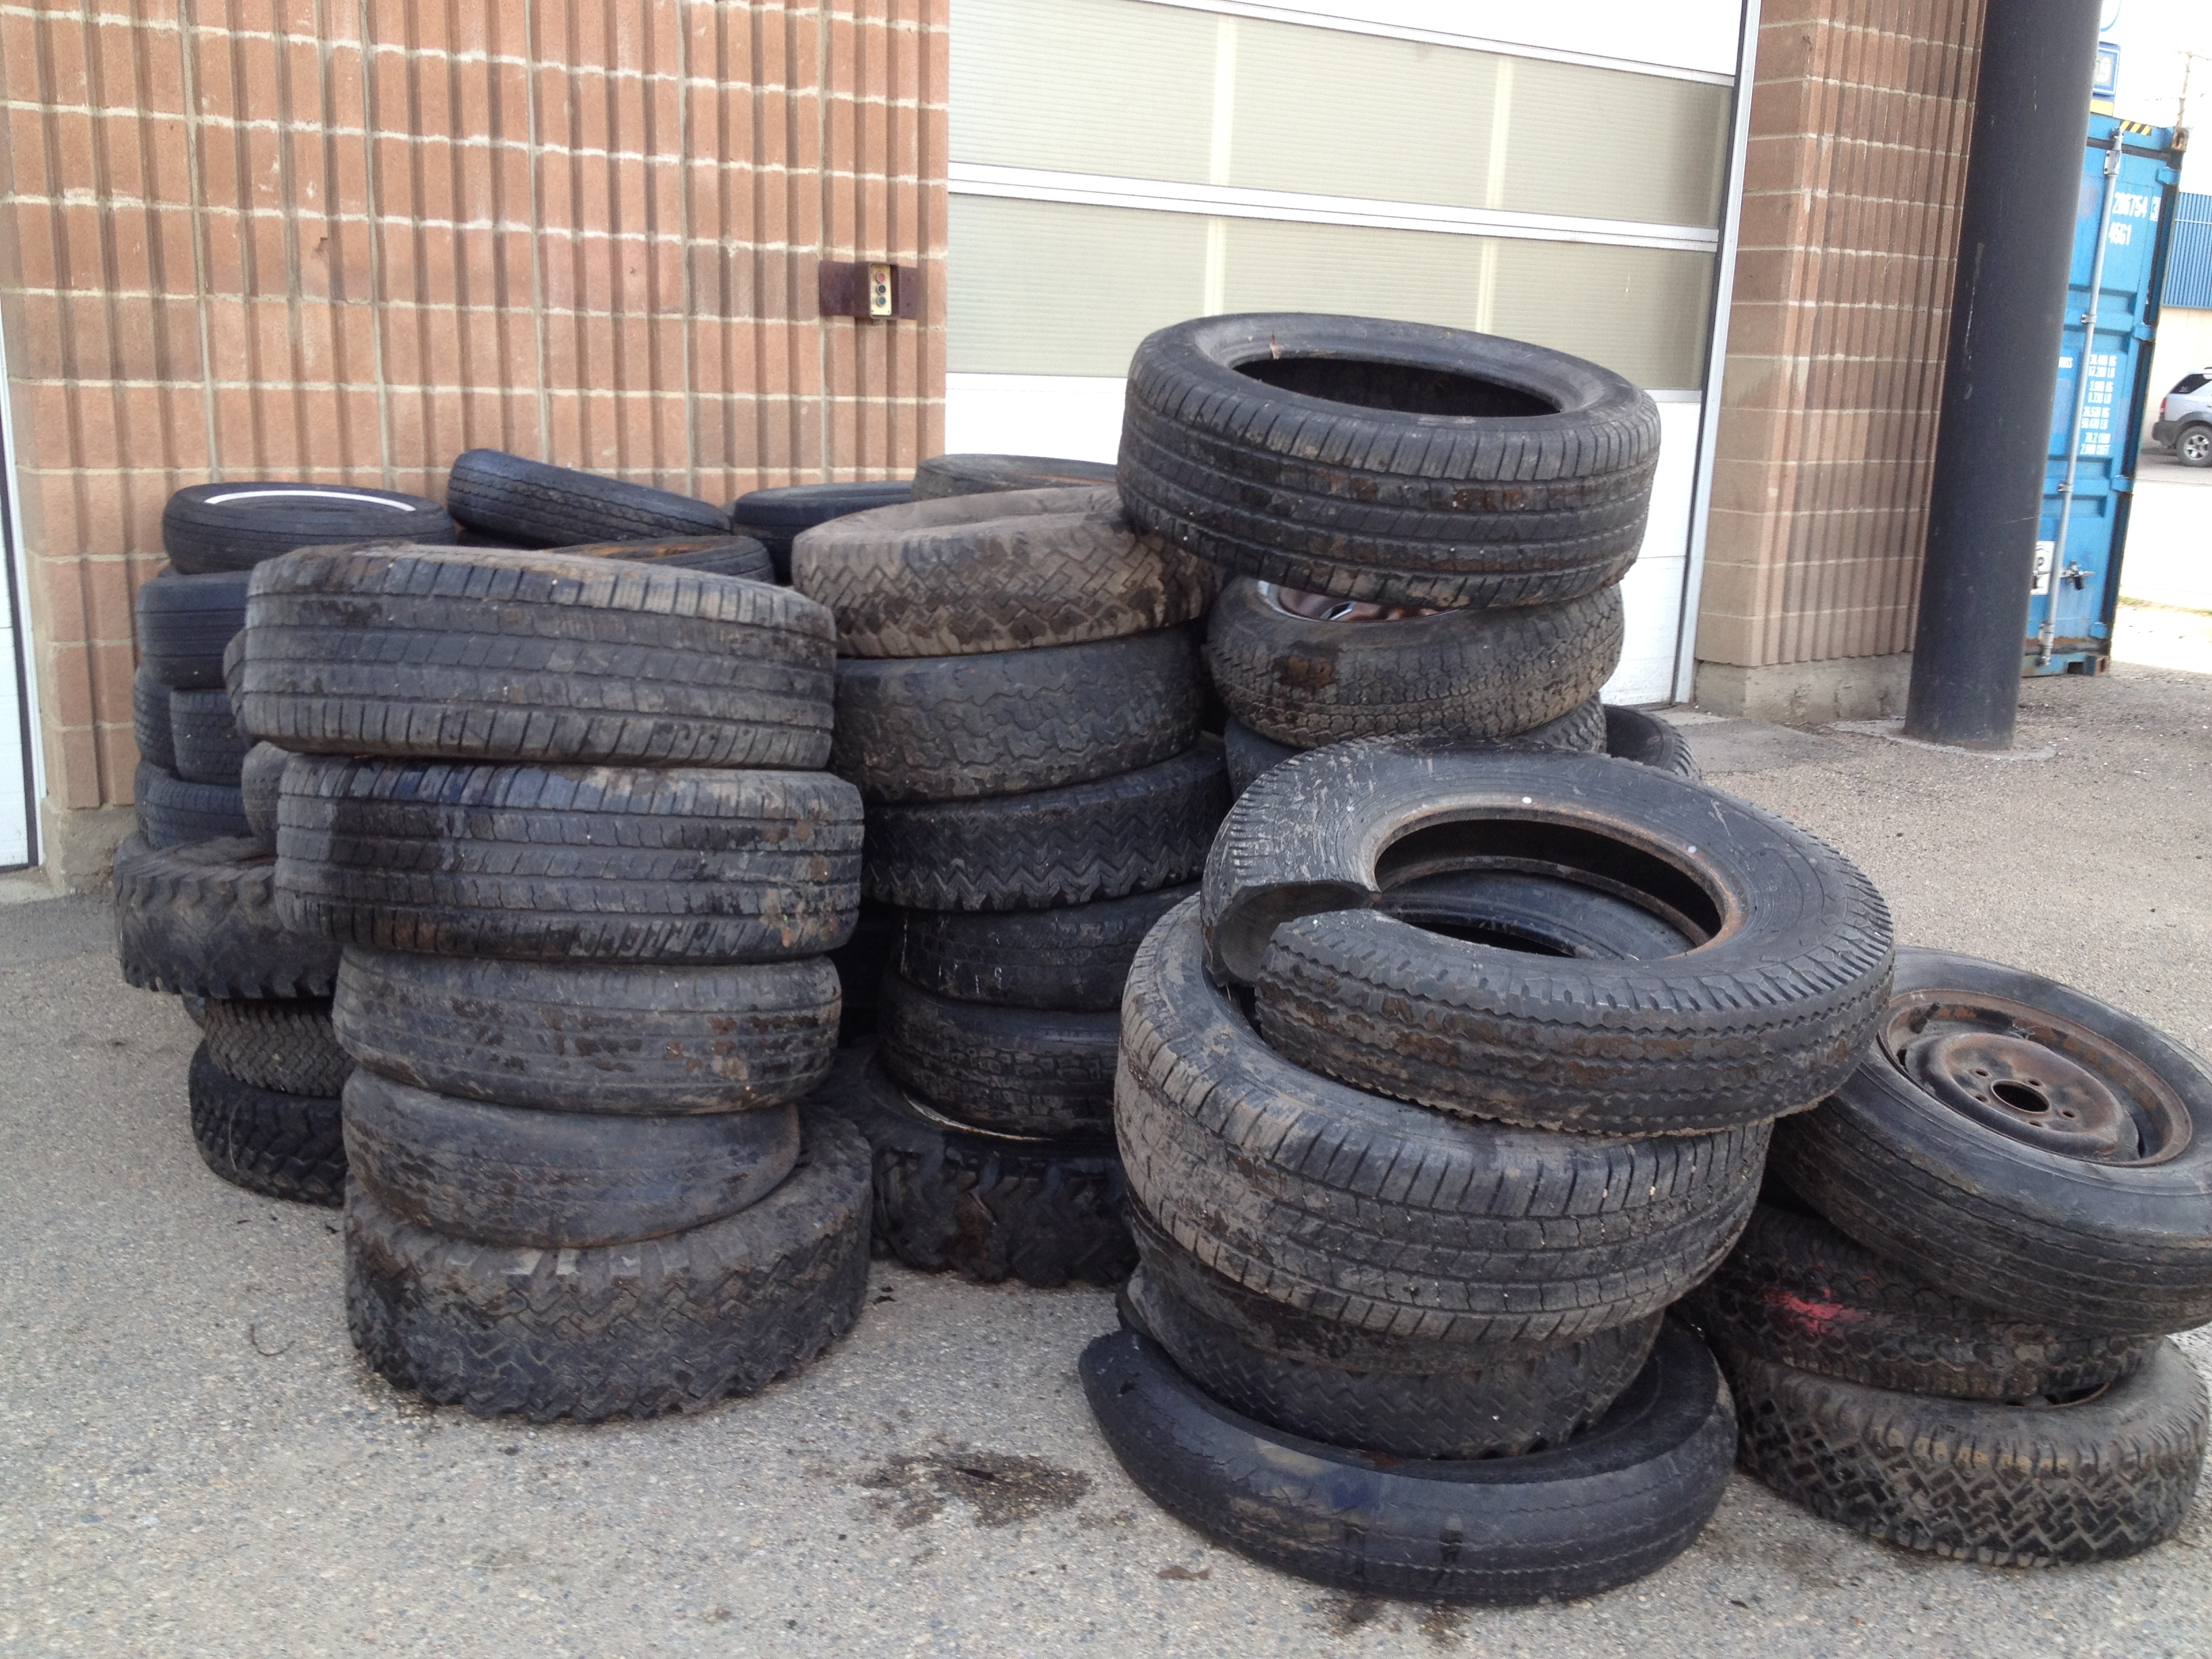 Tires discarded at the Richard St. Barbe Baker Afforestation Area and removed, and taken in for recycling, a charge to the volunteers of over $350.00